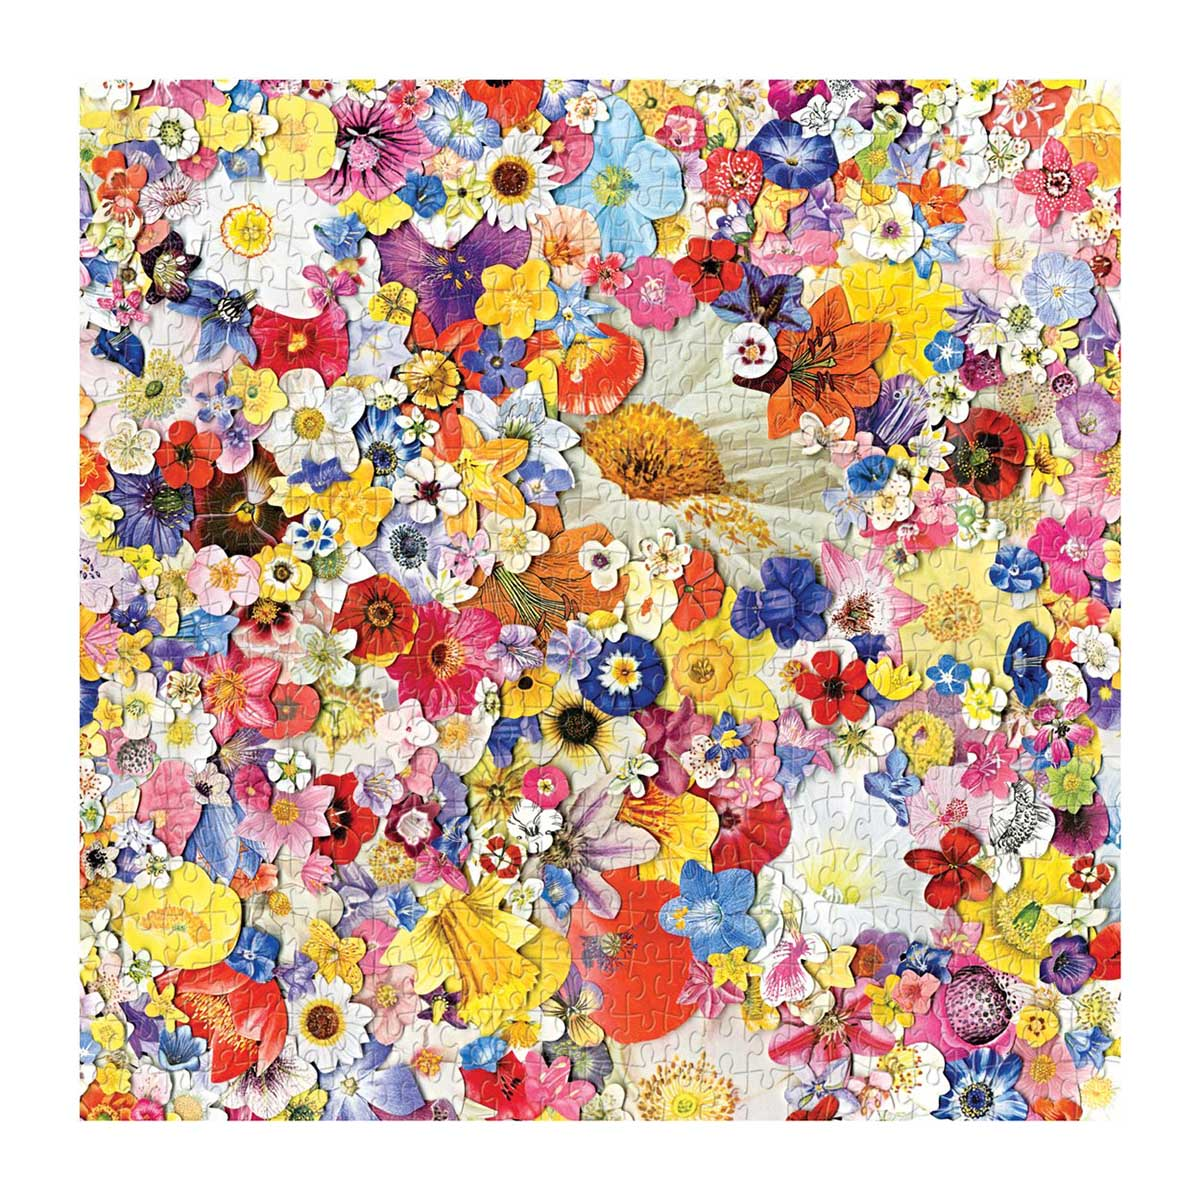 Infinite Bloom Flowers Jigsaw Puzzle